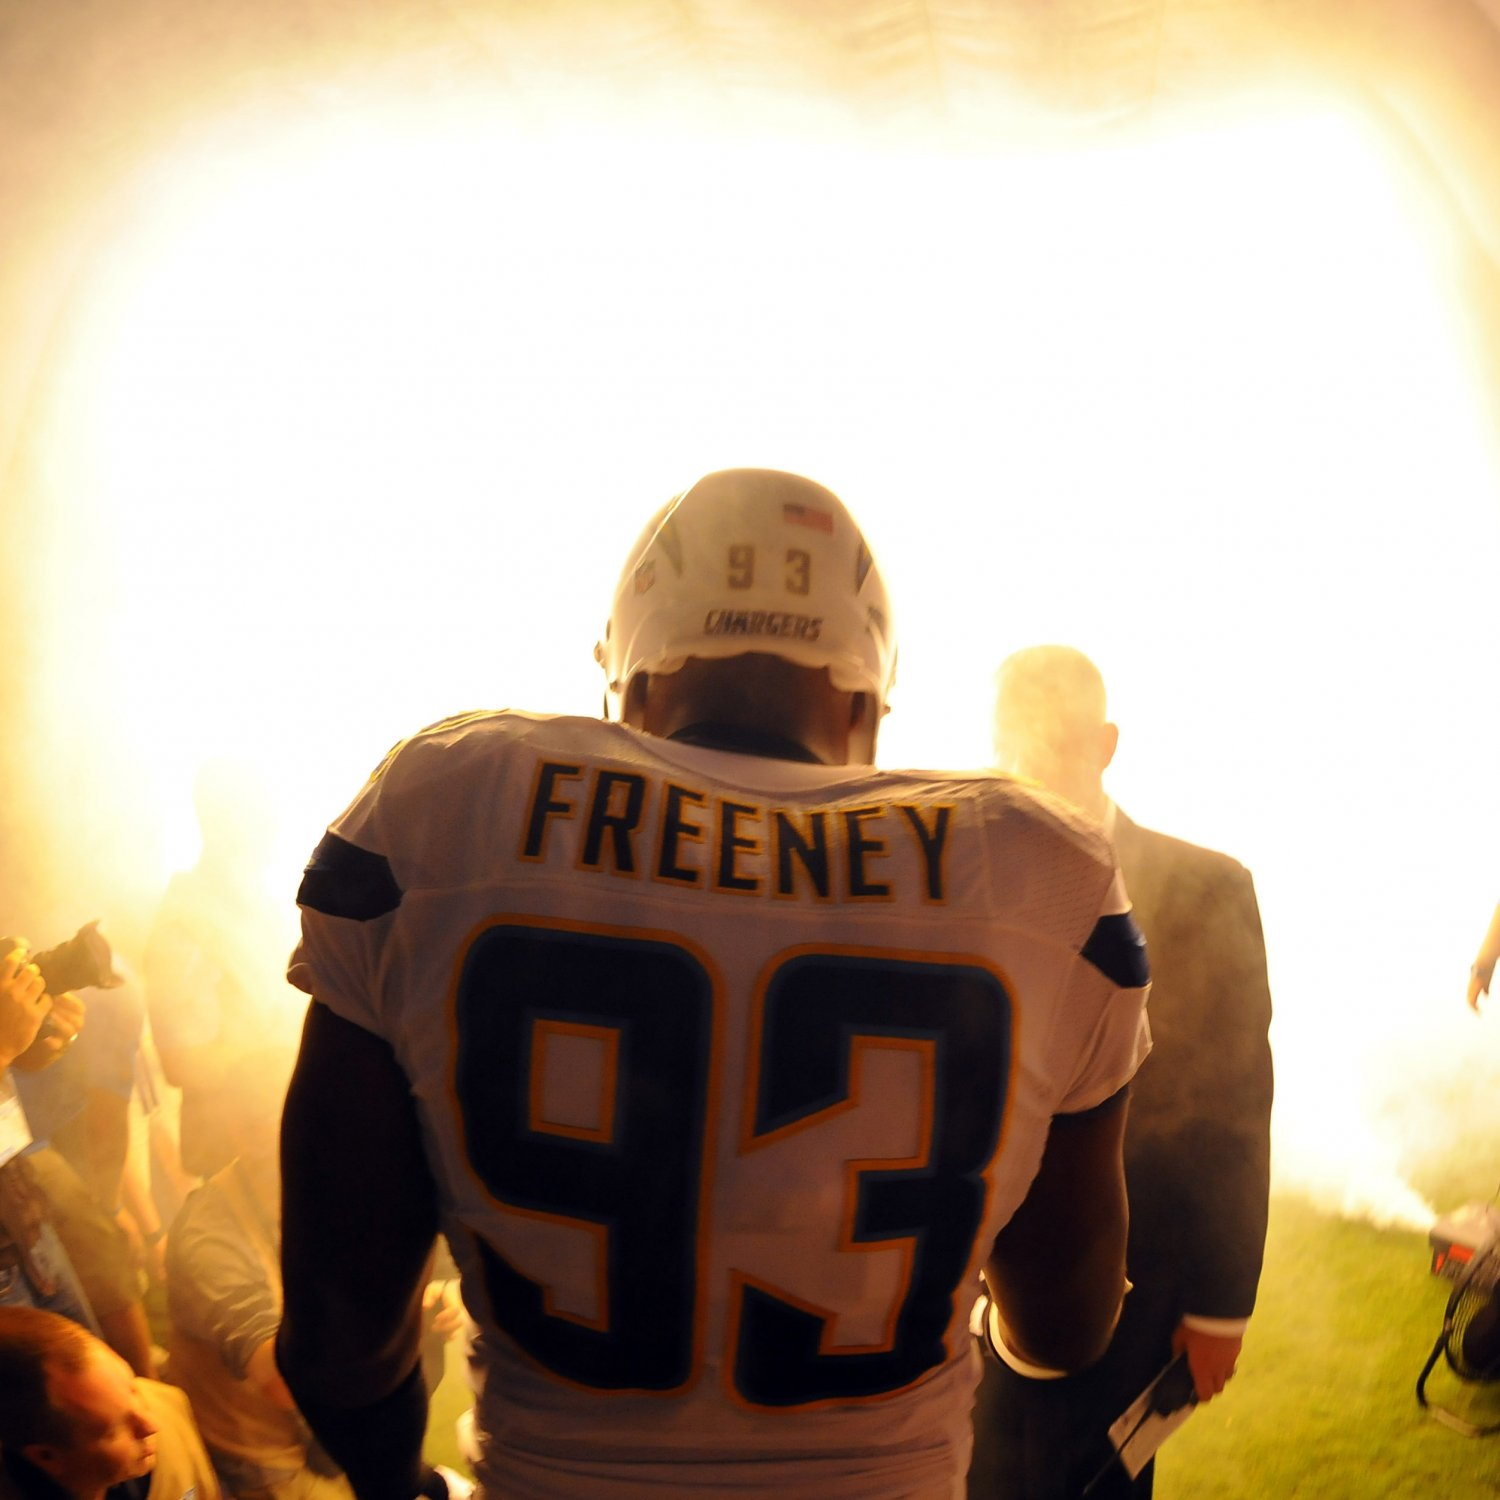 San Diego Chargers Broadcast: Dwight Freeney In Good Spot To Prove 'Haters' Wrong, Lead